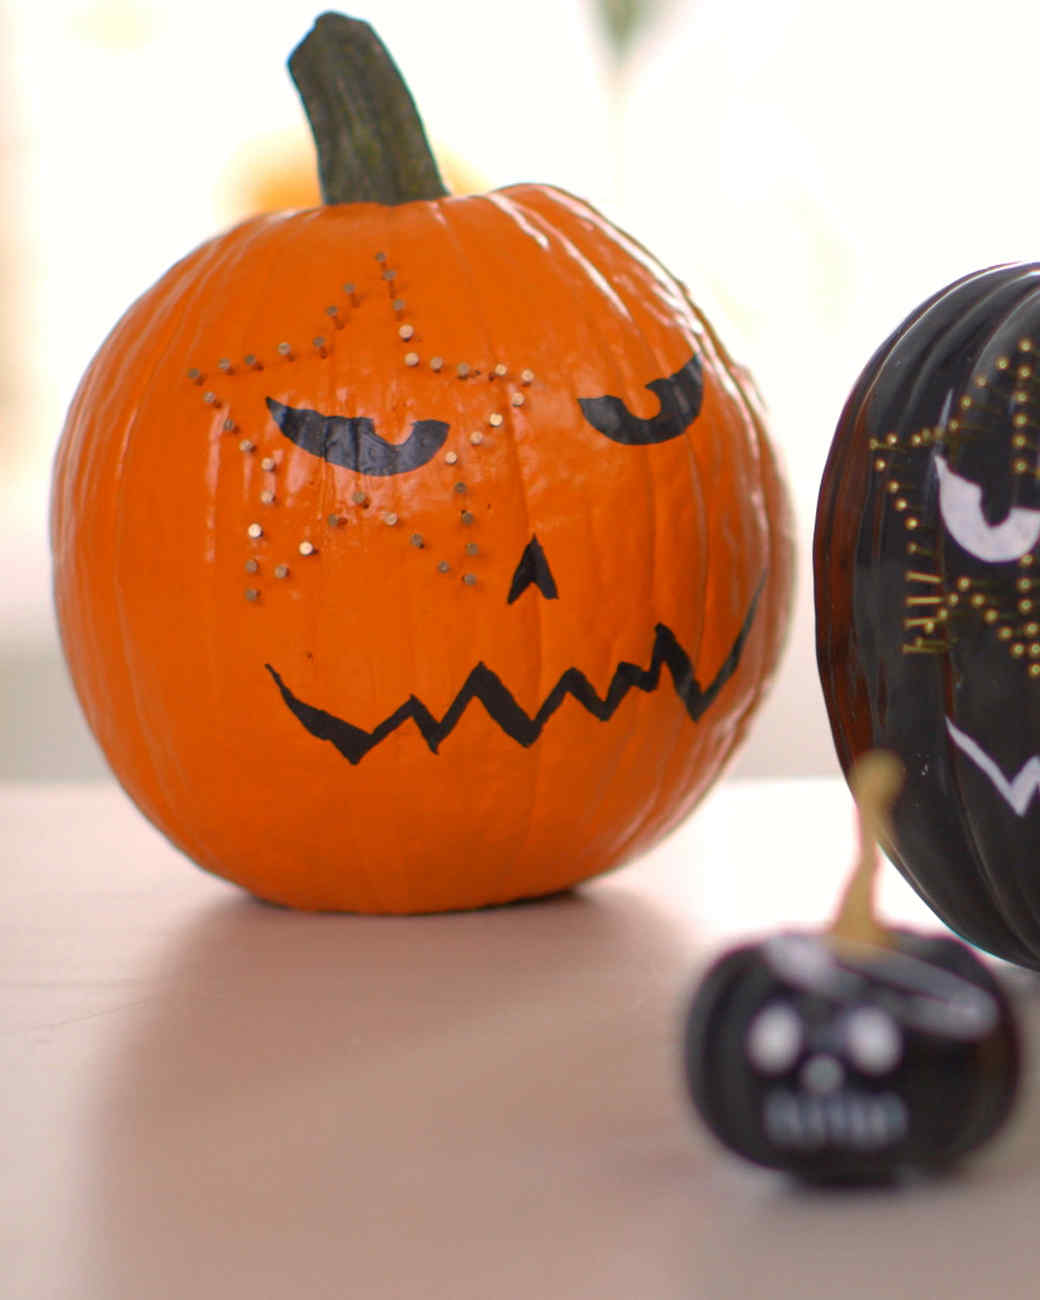 punk_rock_inspired_pumpkins.jpg